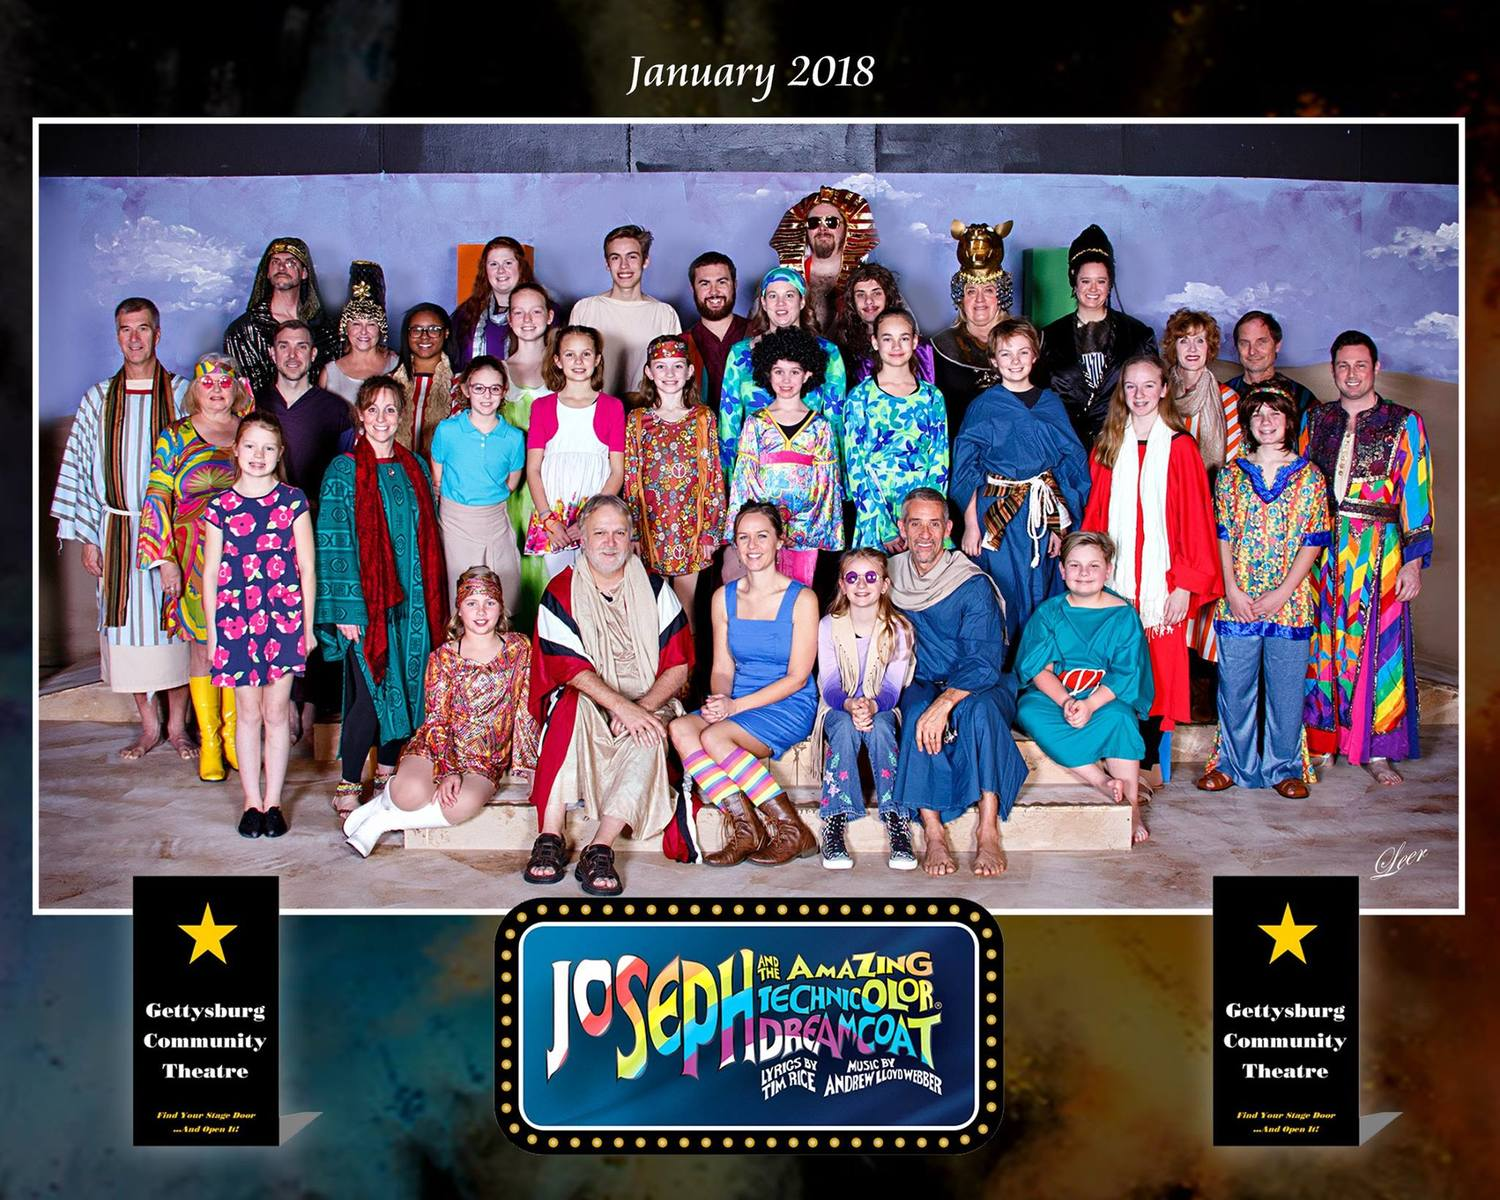 BWW Interview: Cast Members of JOSEPH AND THE AMAZING TECHNICOLOR DREAMCOAT at Gettysburg Community Theatre